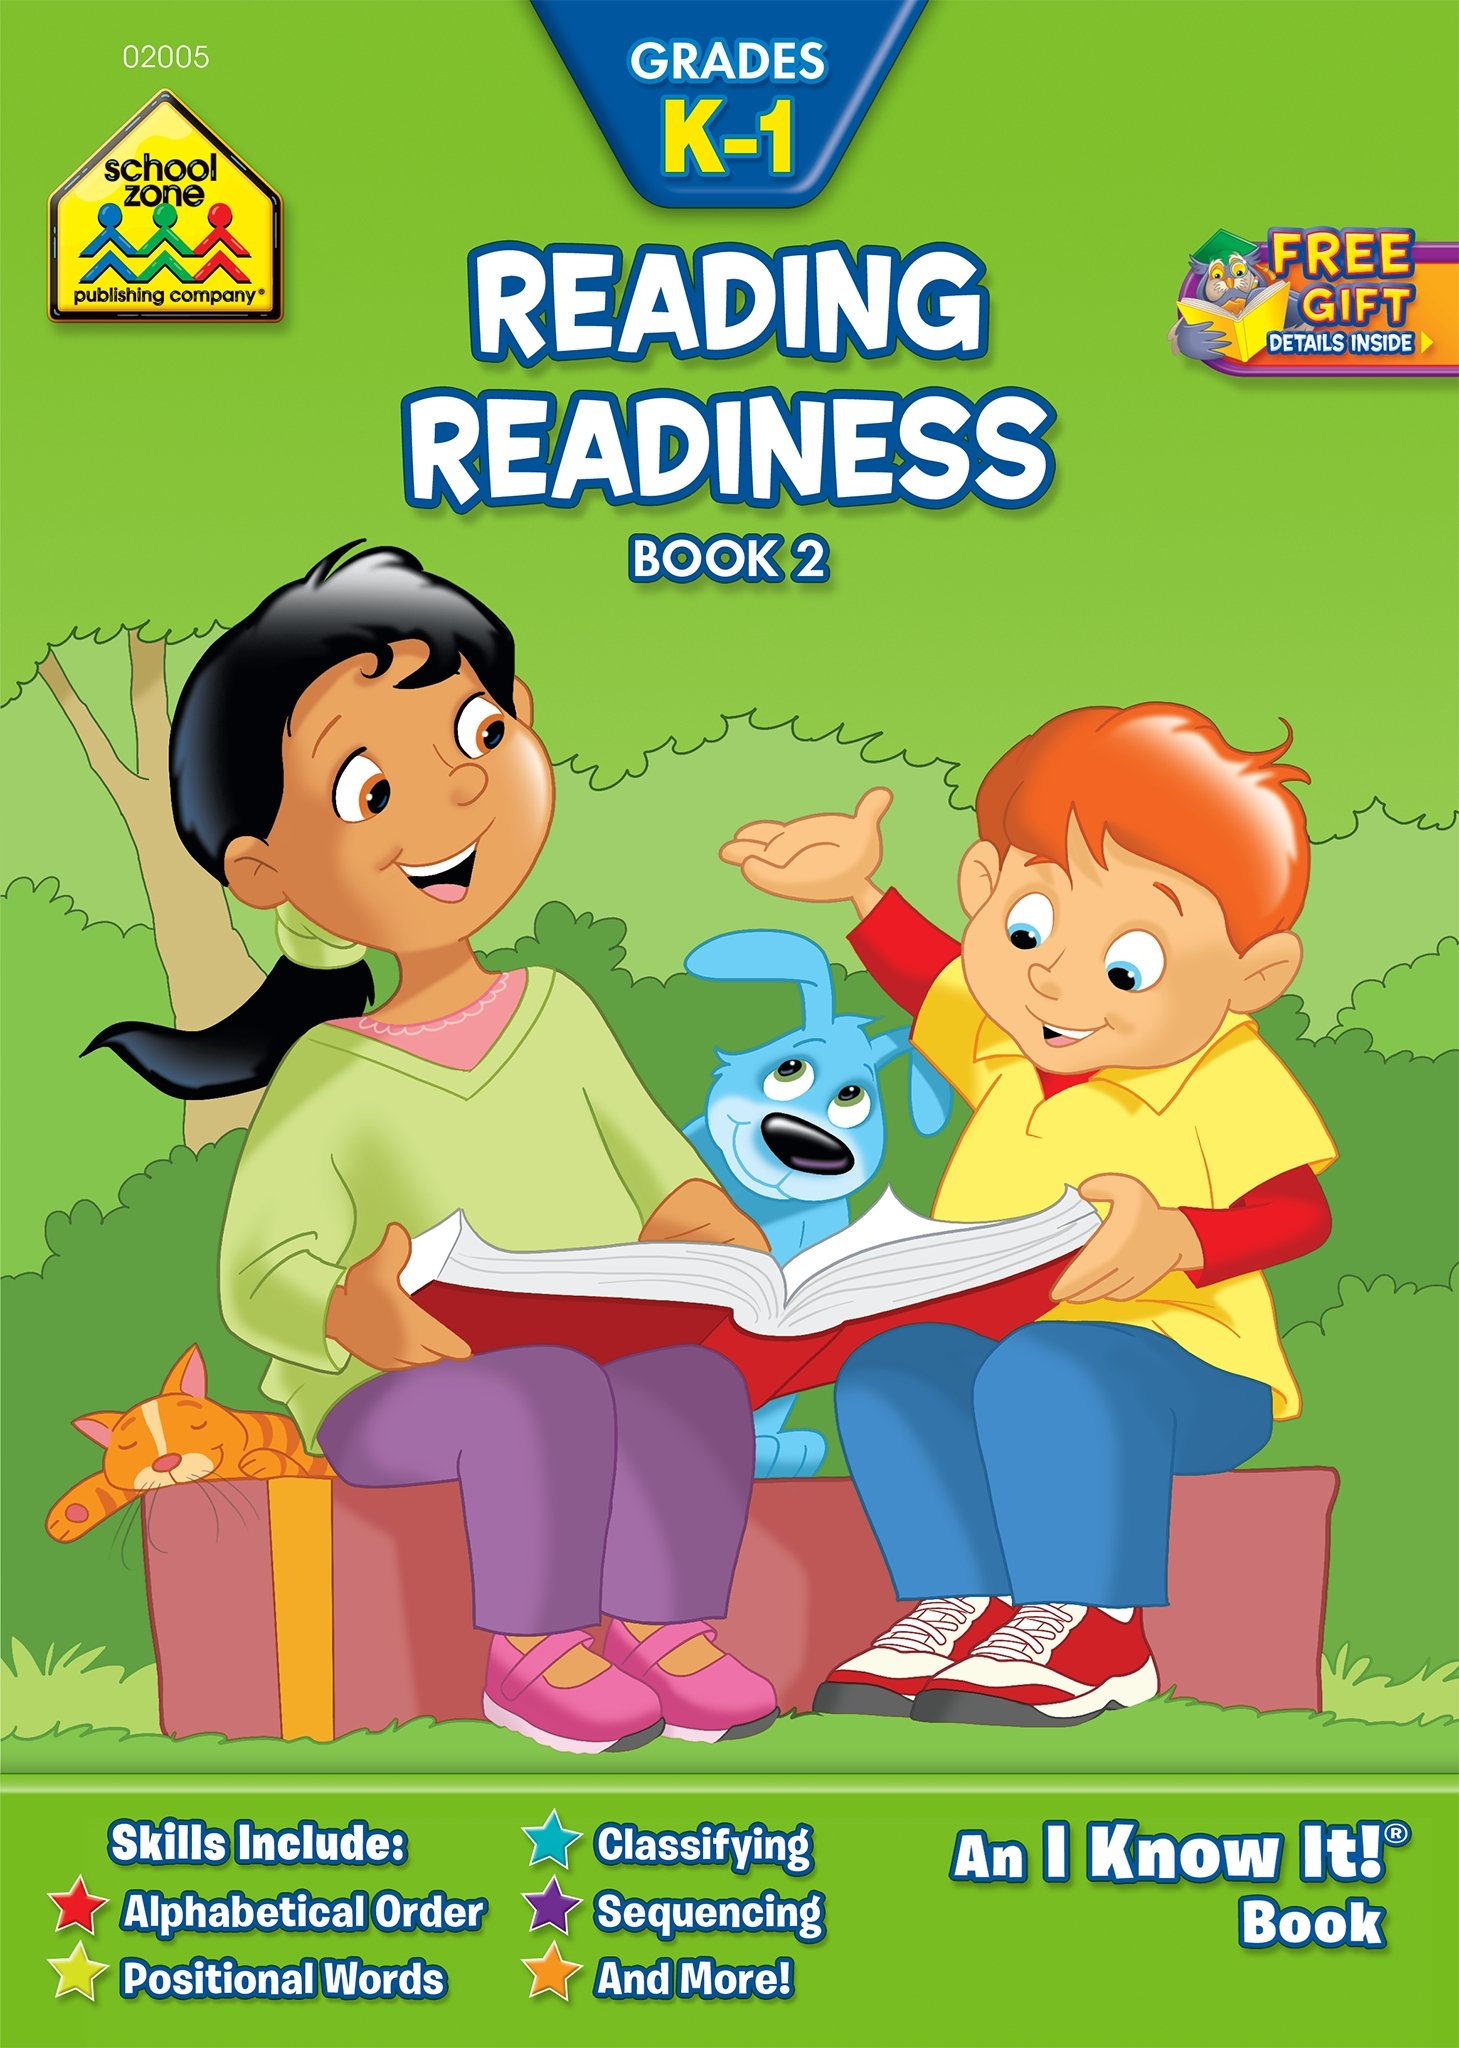 School Zone - Reading Readiness Book 2 Workbook - Ages 5 to 6, Kindergarten to 1st Grade, ABC Order, Positional Words, Numbers, Rhyming, and More (School Zone I Know It!® Workbook Series)